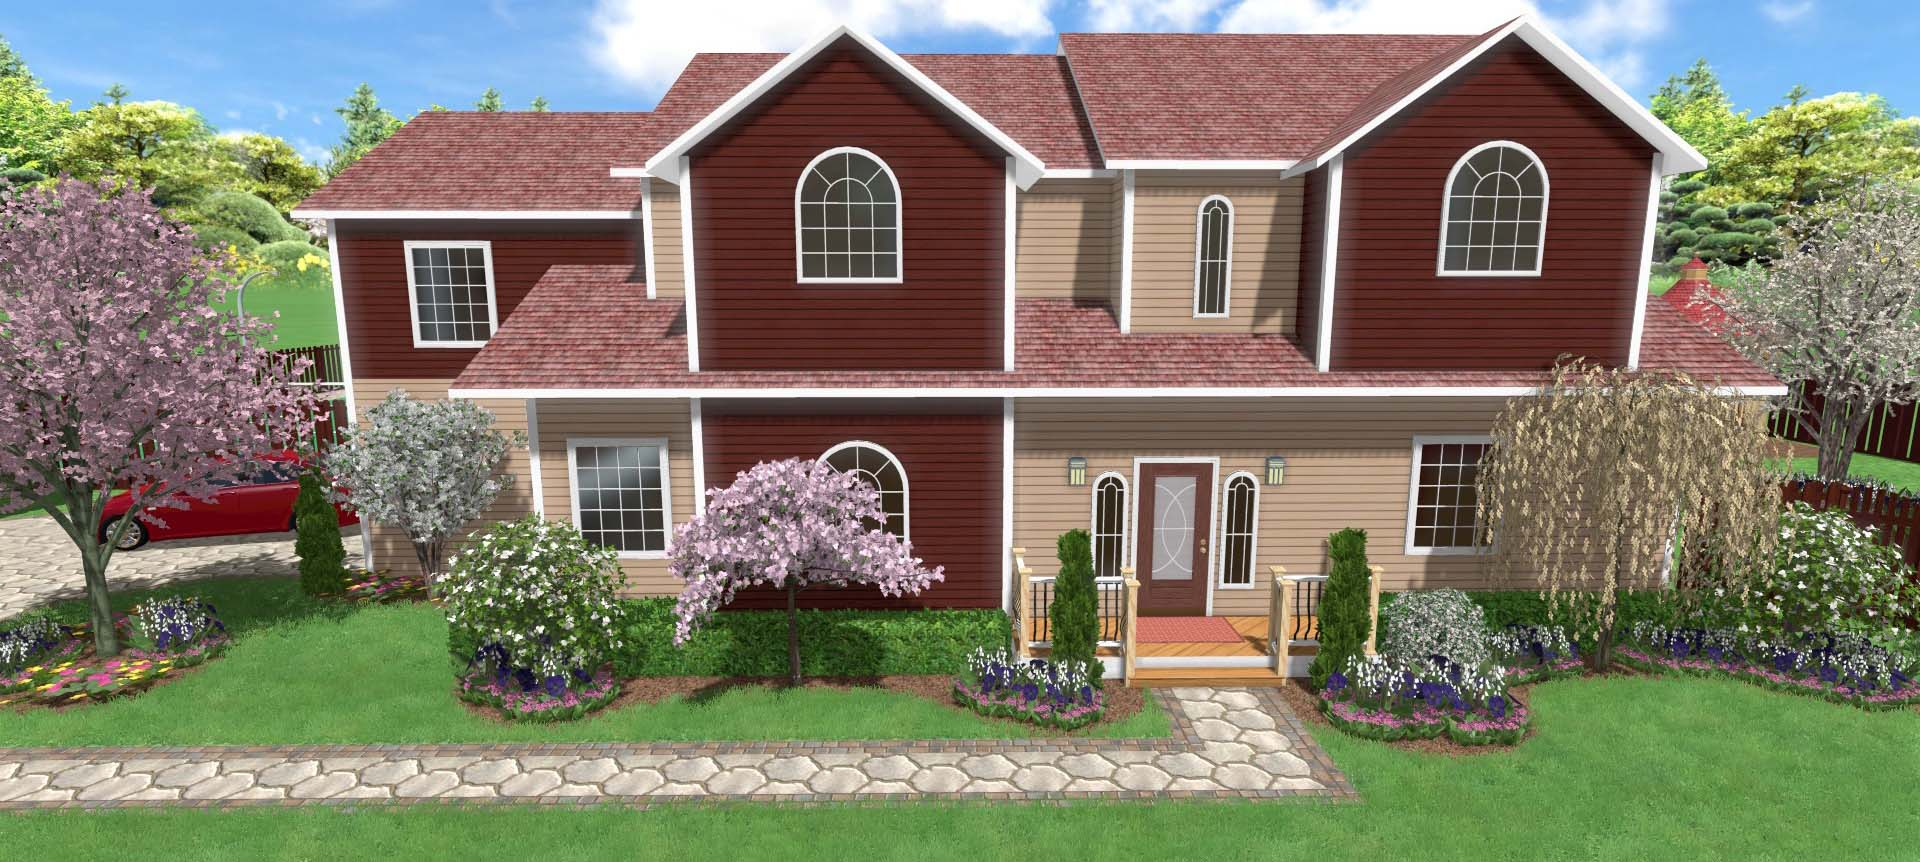 Home landscaping software for Garden design new build house